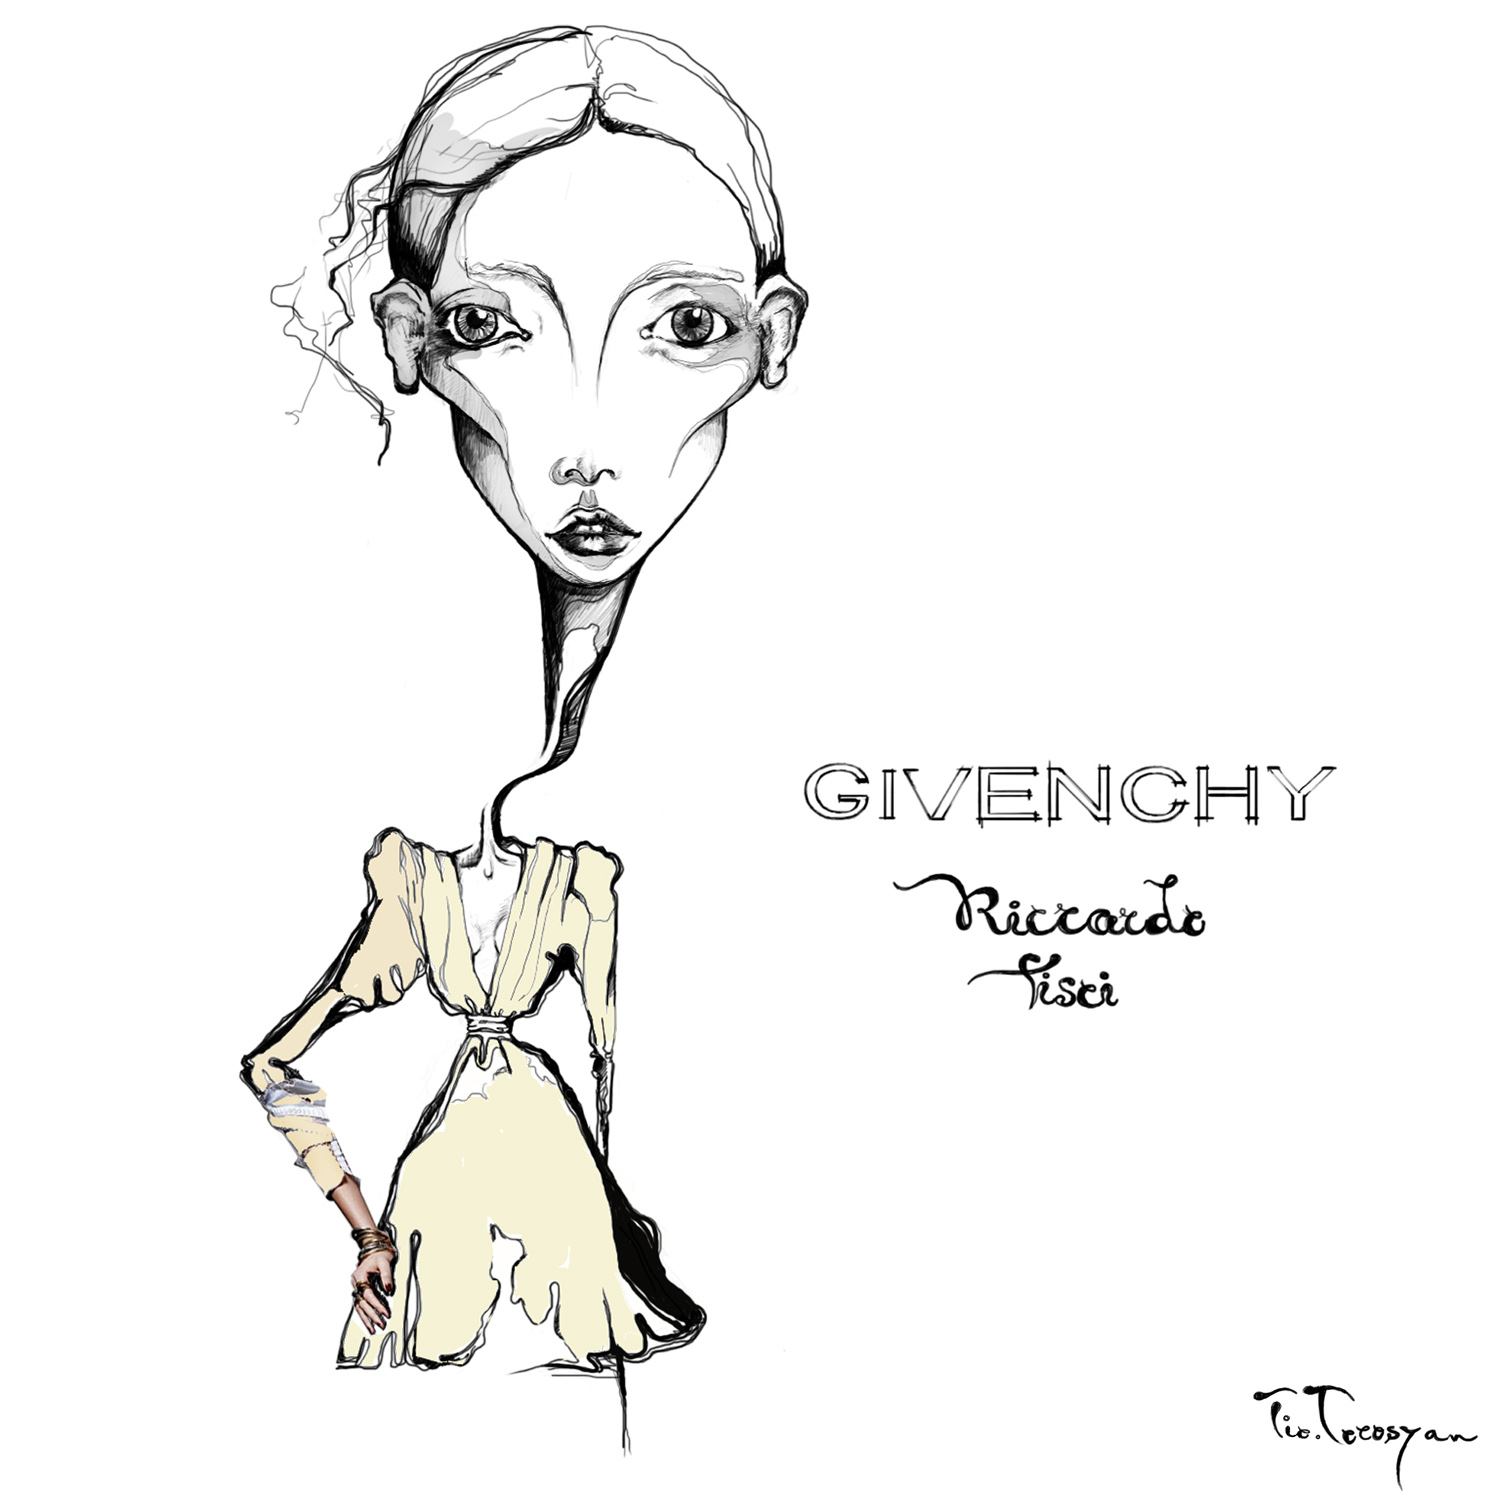 givenchy-ricardo-tisci-tio-torosyan-fashion-illustration-the-fashion-jumper